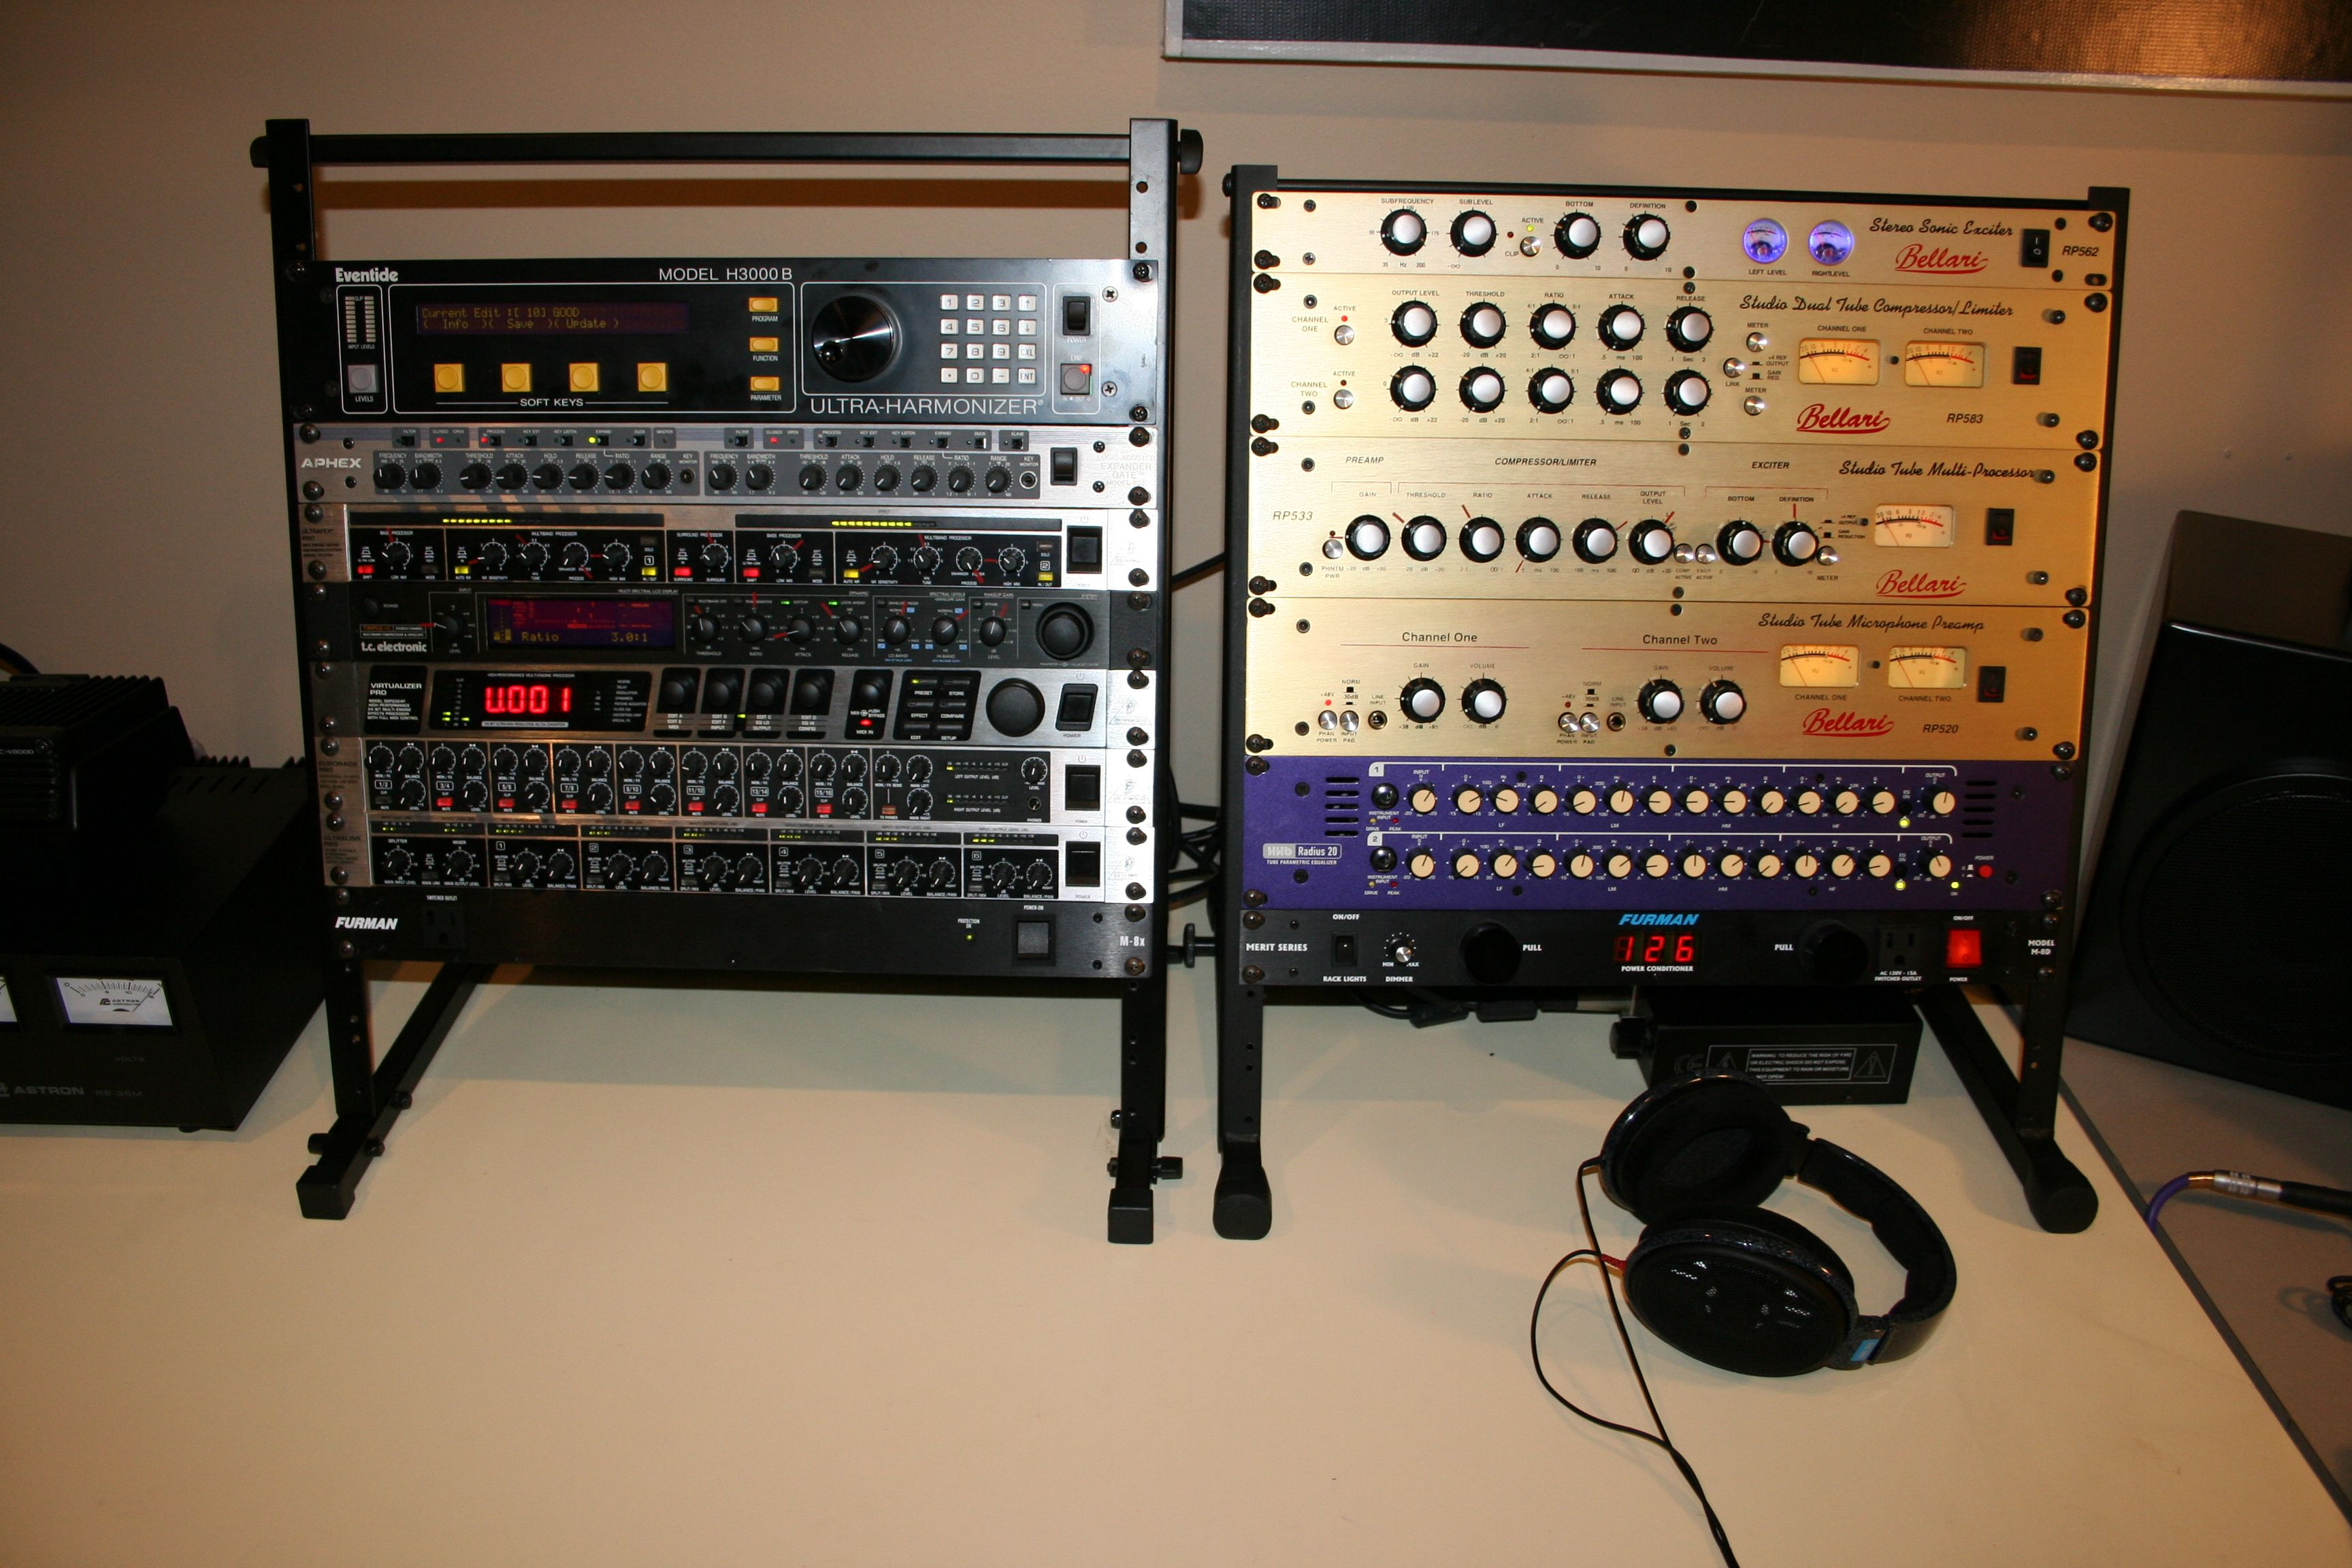 Here's the KC9MSI Voodoo Rack!